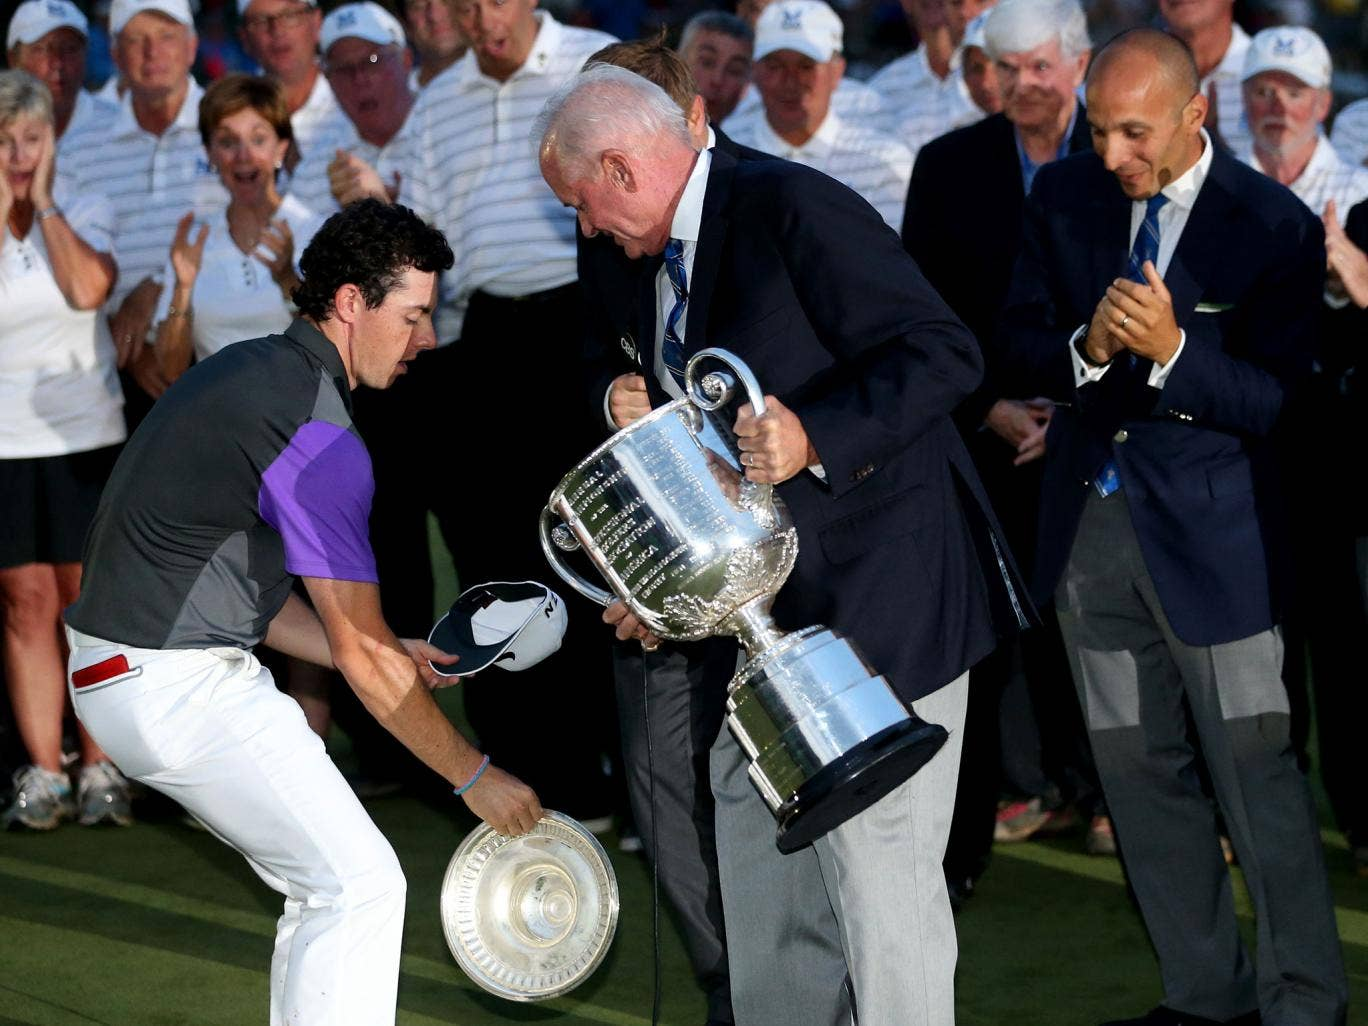 Rory McIlroy catches the lid of the Wanamaker Trophy after winning the US PGA Championship at Valhalla